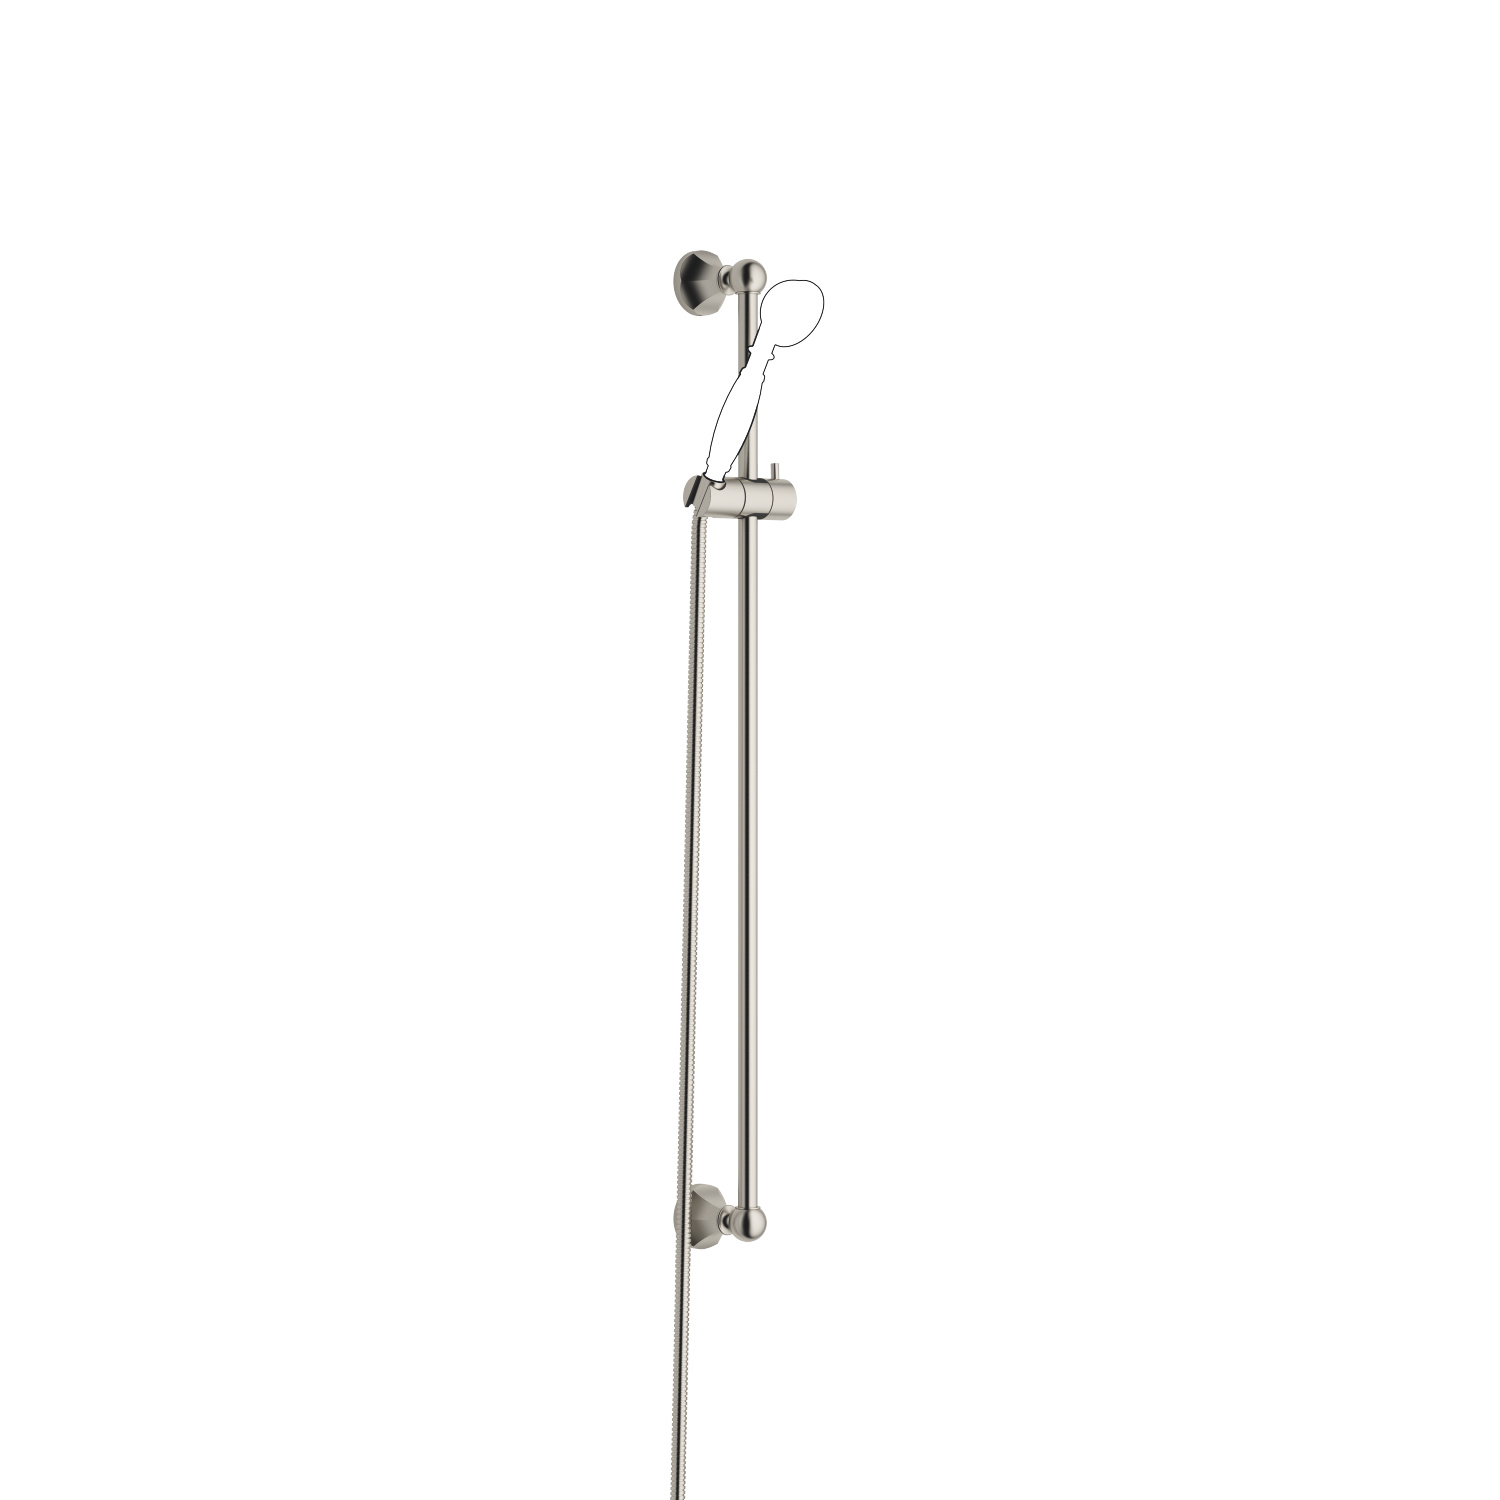 Garniture de douche - platine mat